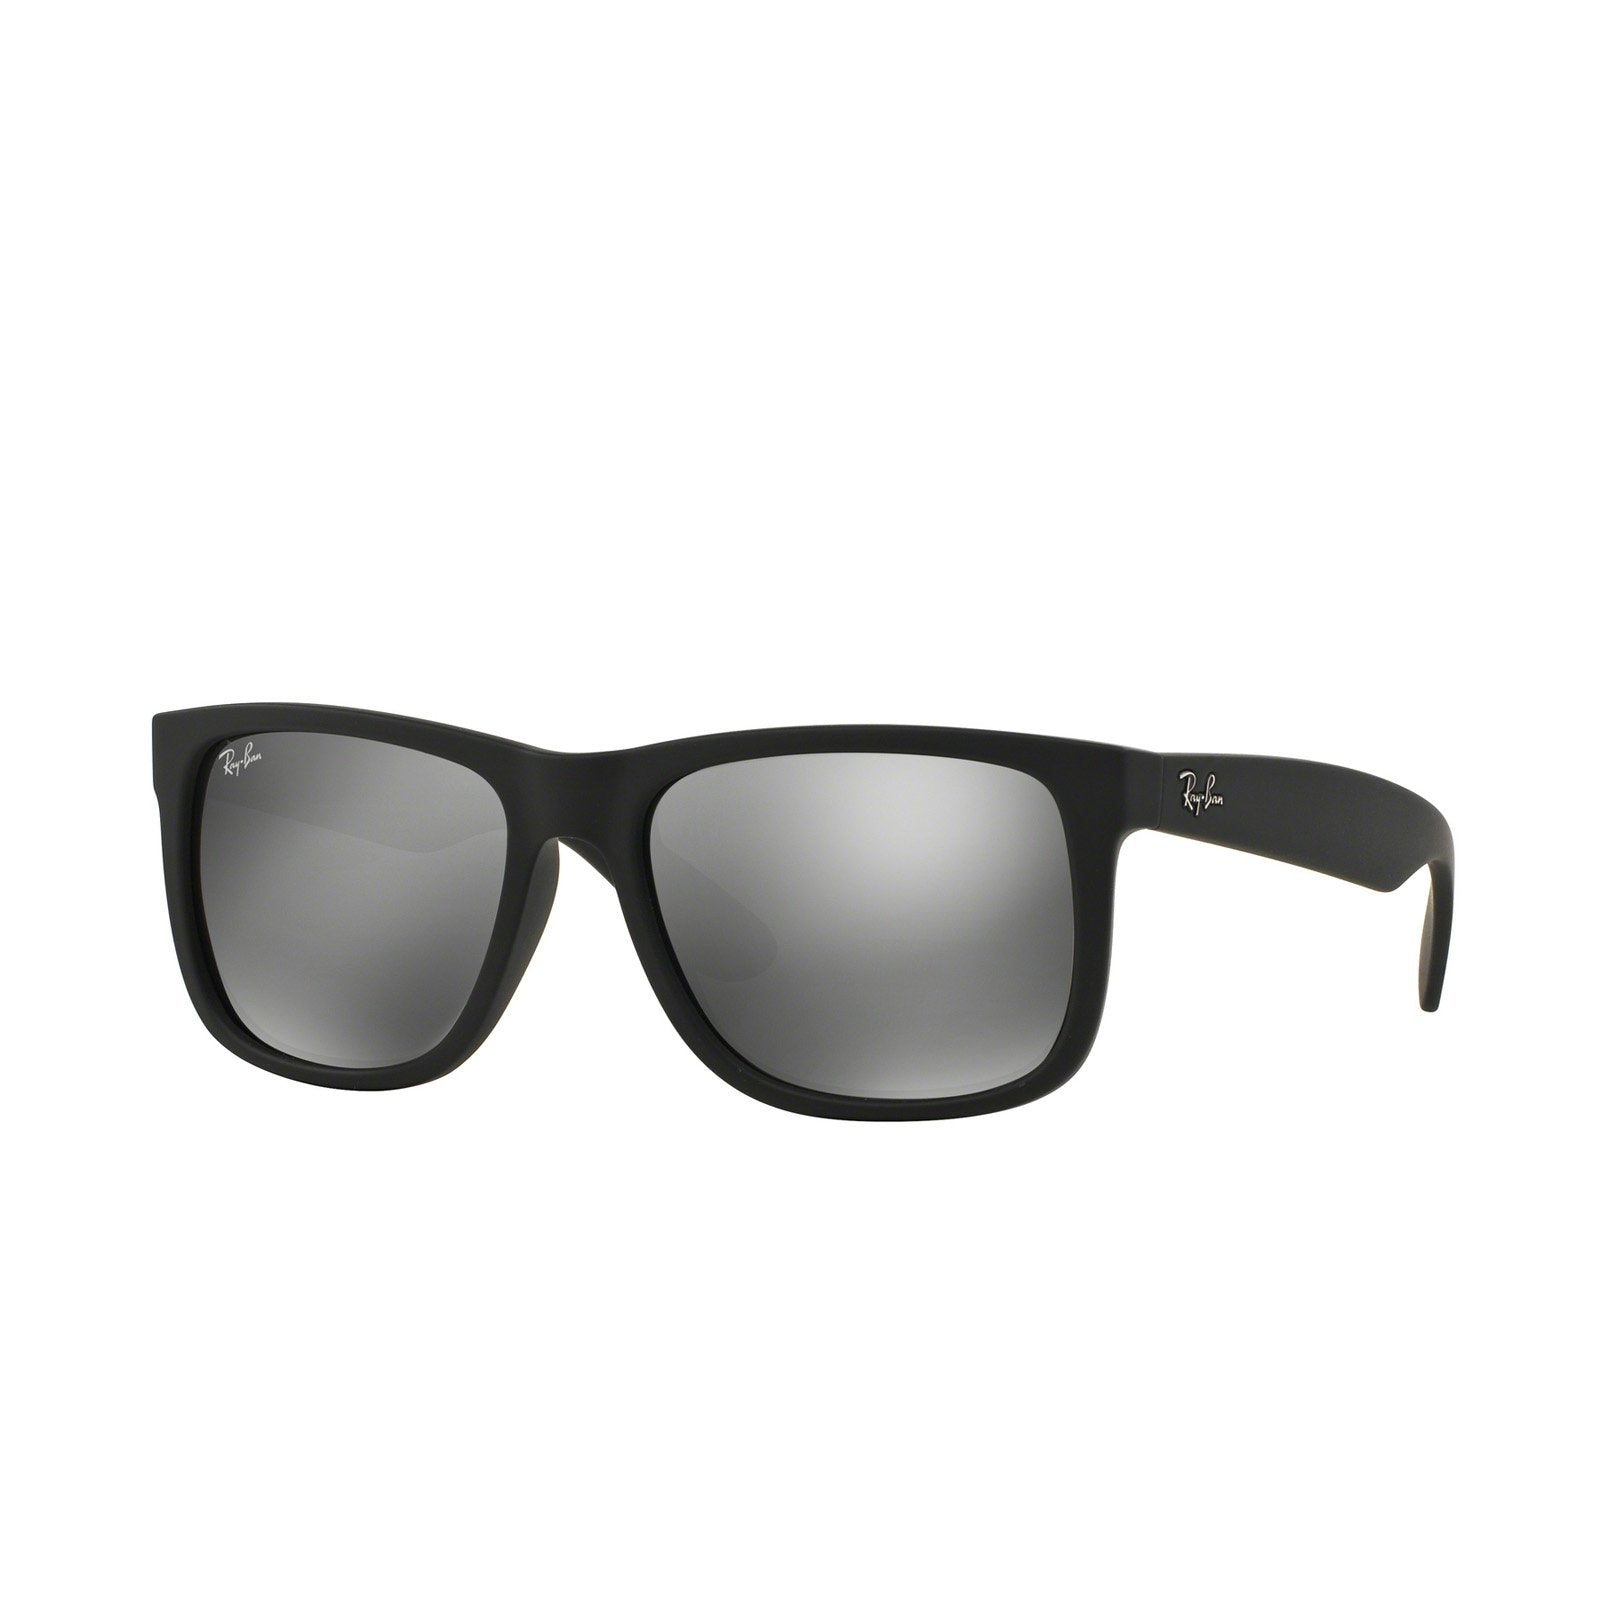 Ray-Ban RB4165 622/6G Sunglasses